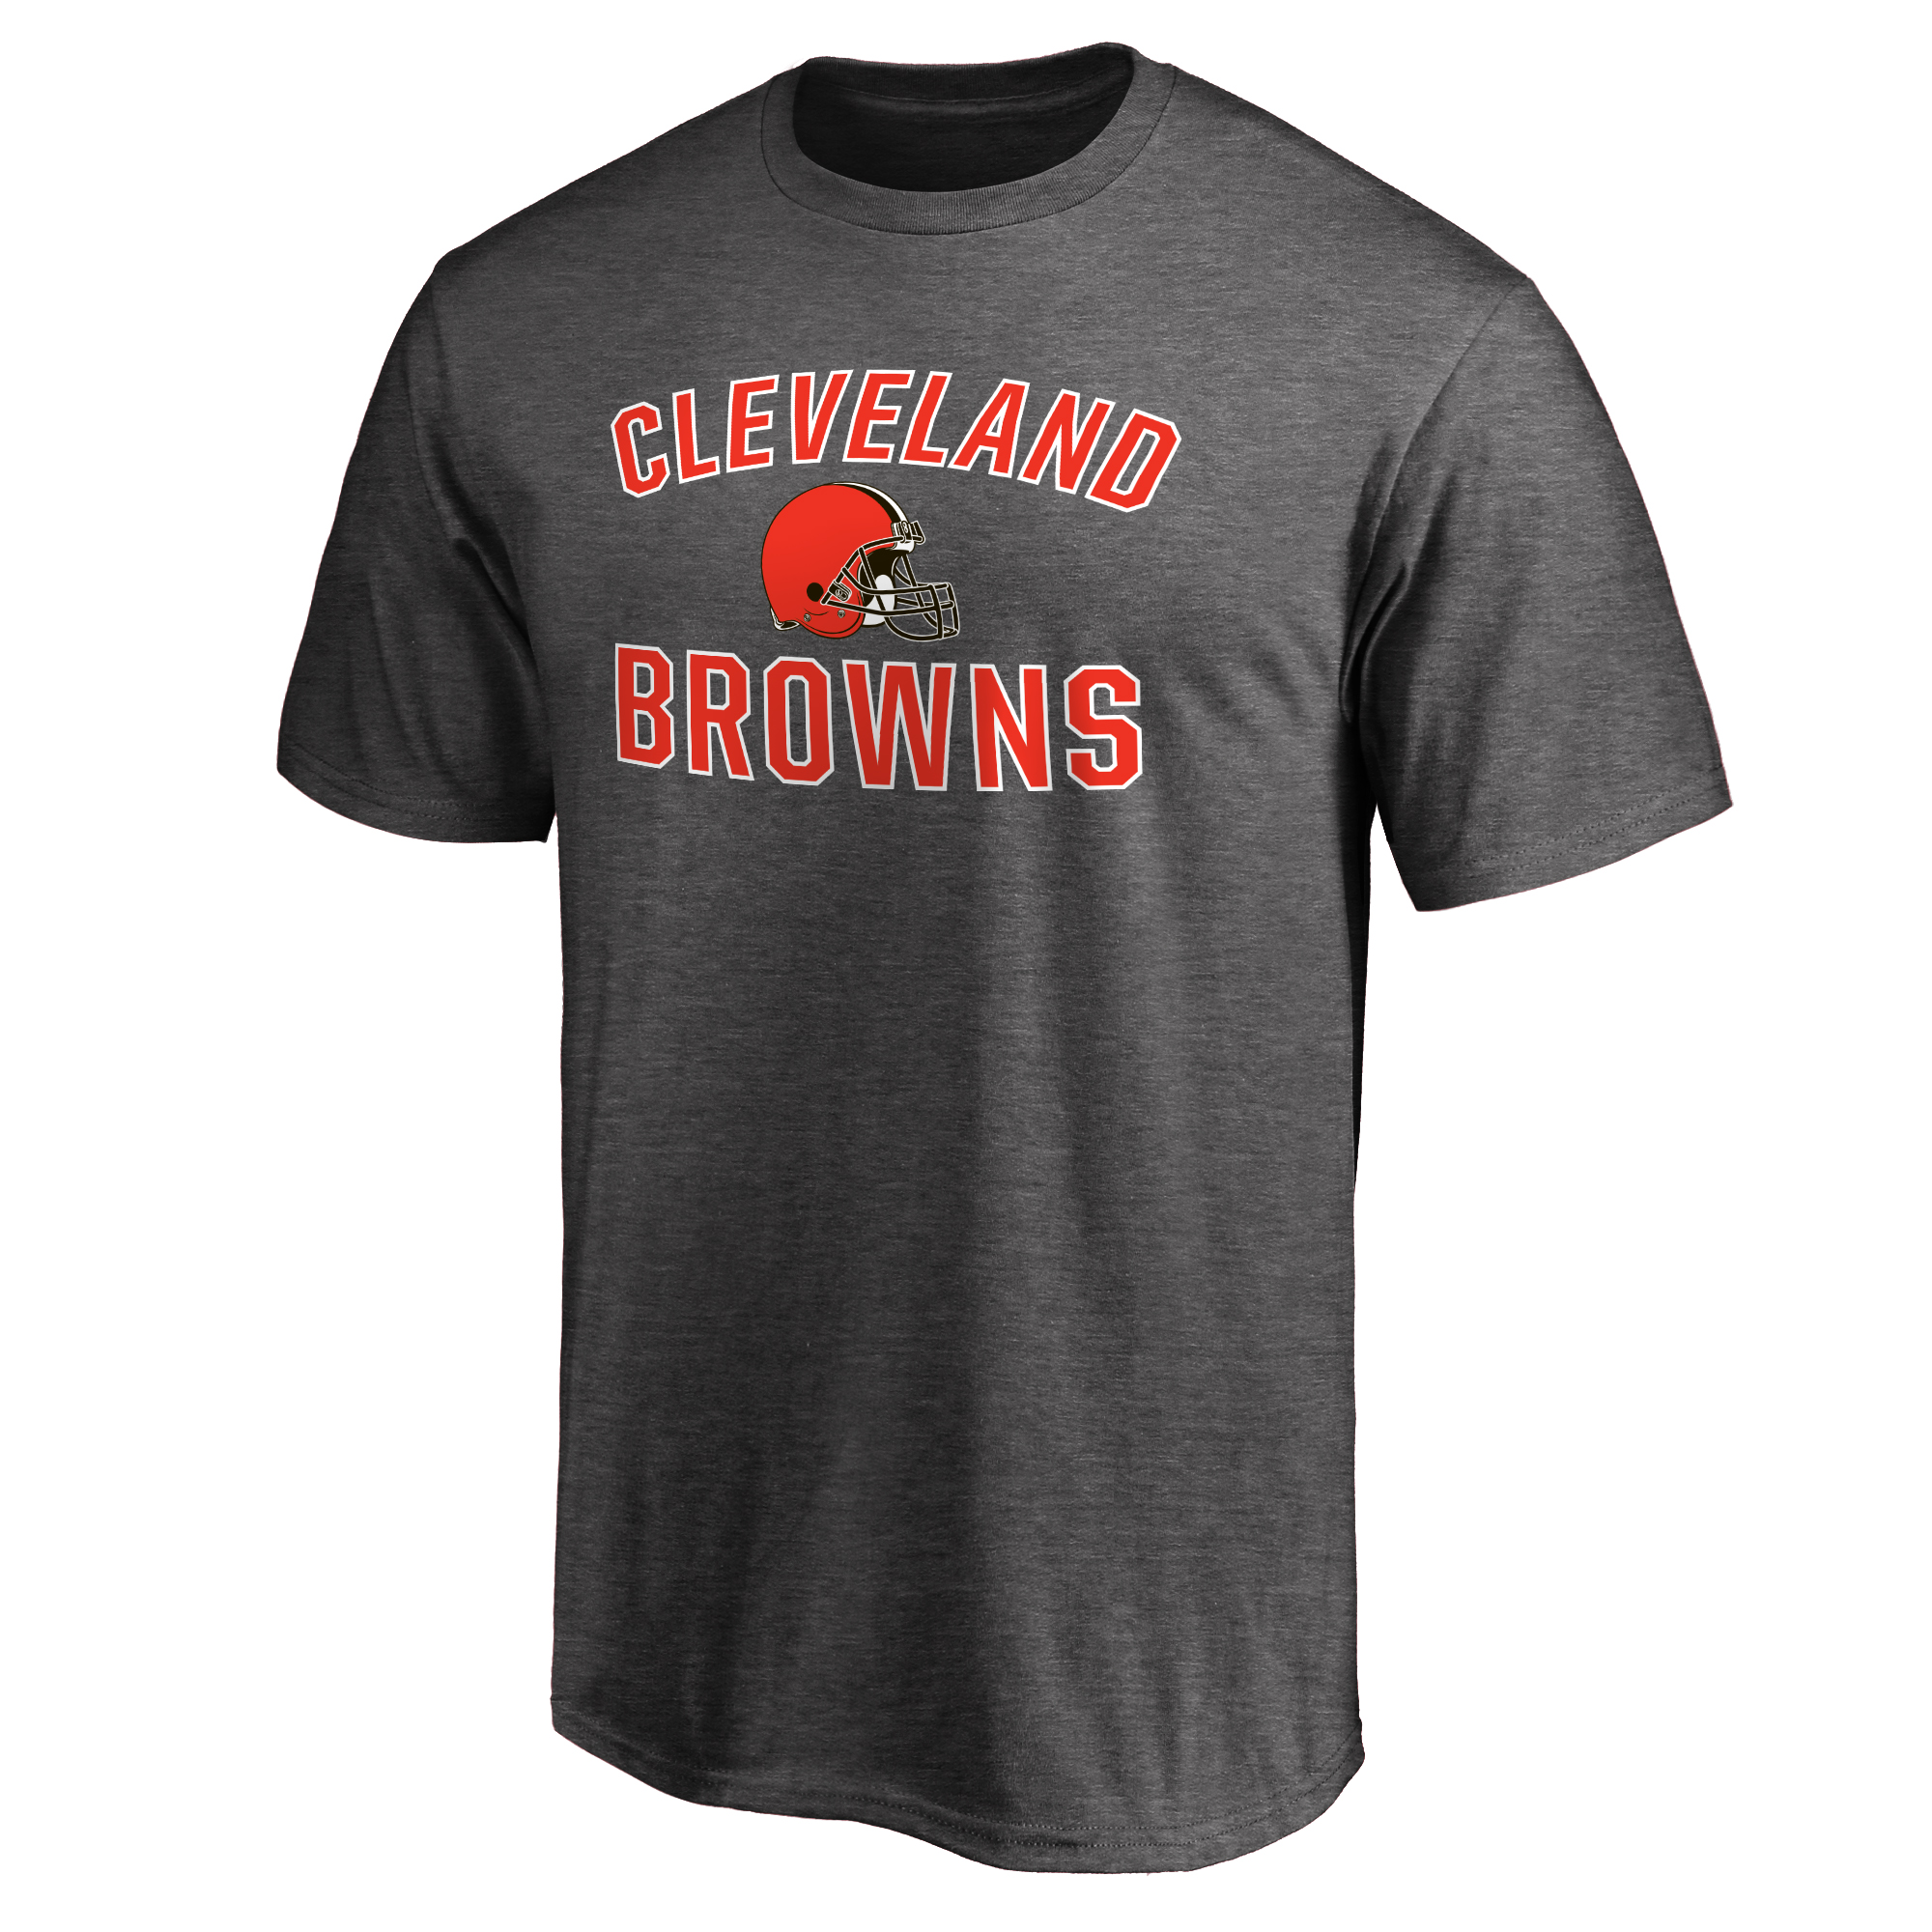 Cleveland Browns NFL Pro Line Victory Arch T-Shirt - Gray